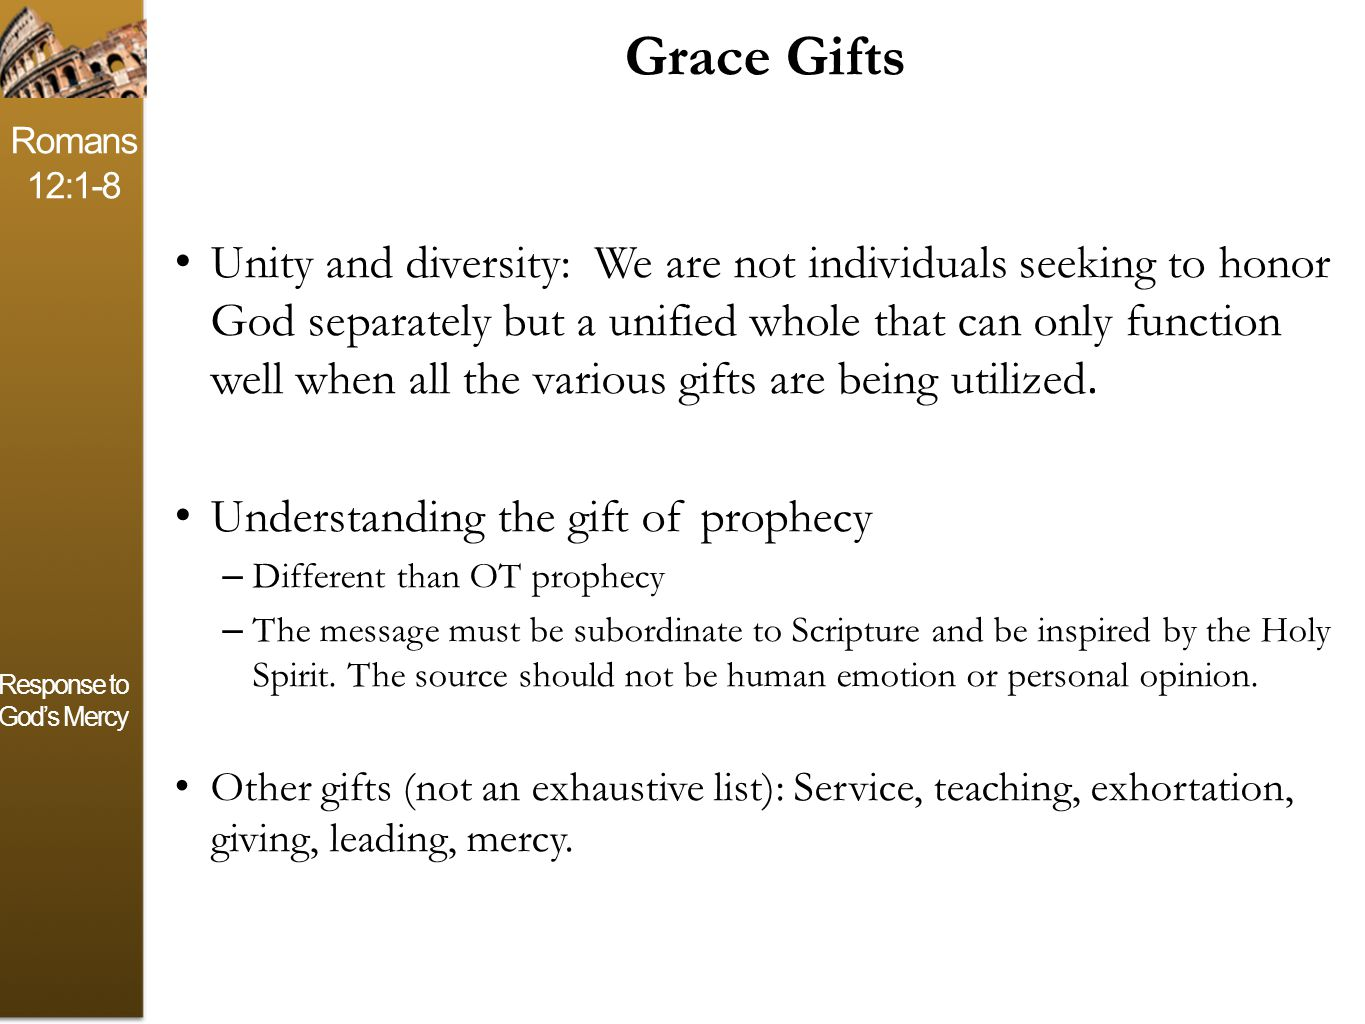 Romans 12:1-8 Response to God's Mercy Grace Gifts Unity and diversity: We are not individuals seeking to honor God separately but a unified whole that